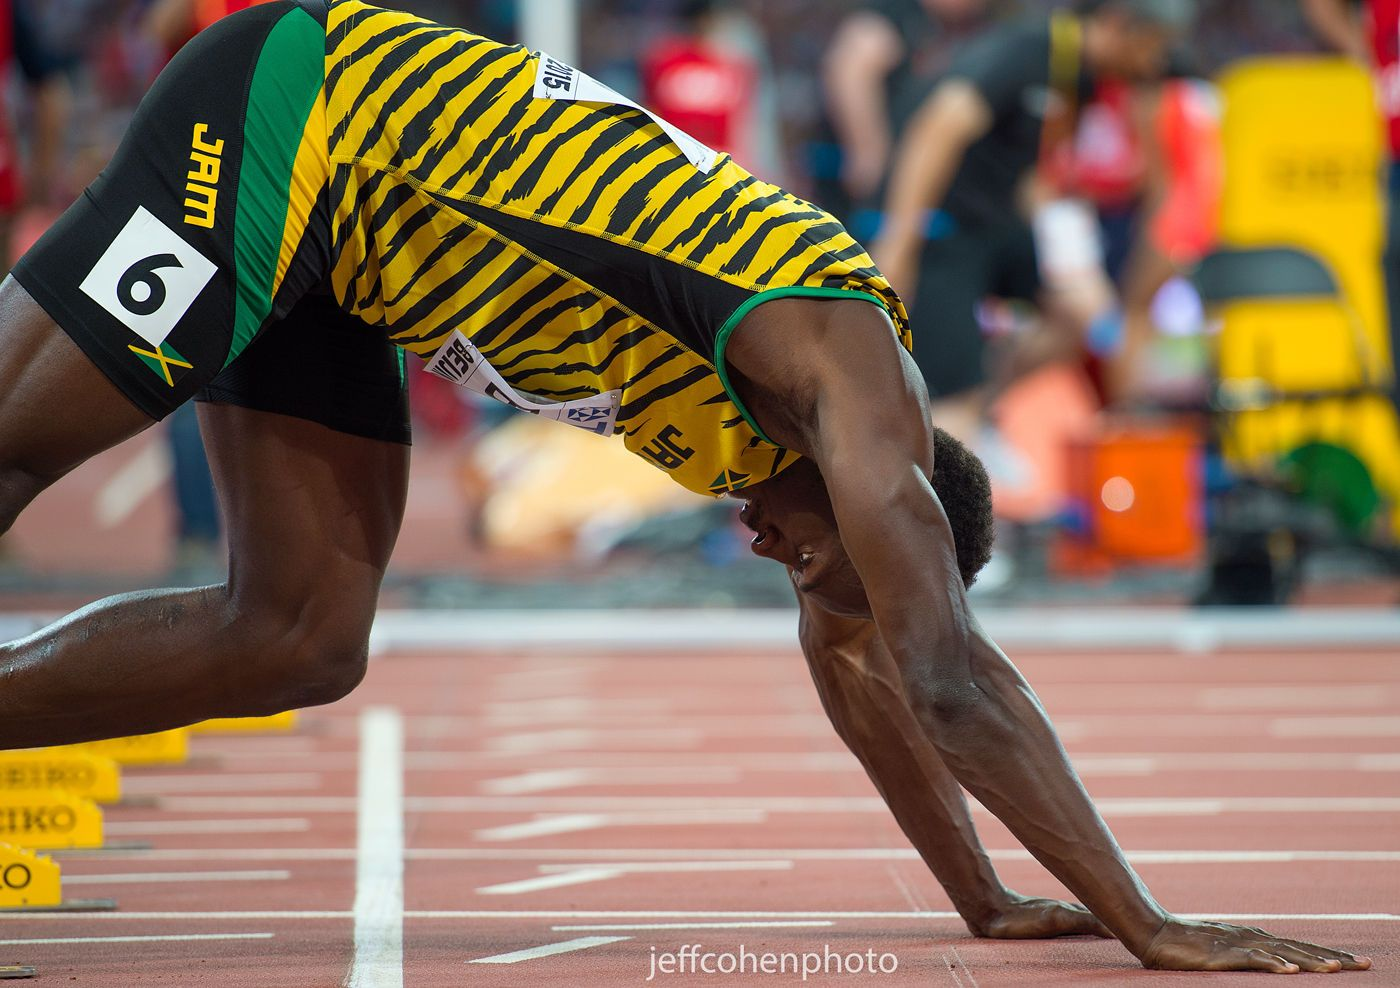 1beijing2015_day1_usain_bolt_100m_blocks_jeff_cohen_photo_2333_web.jpg